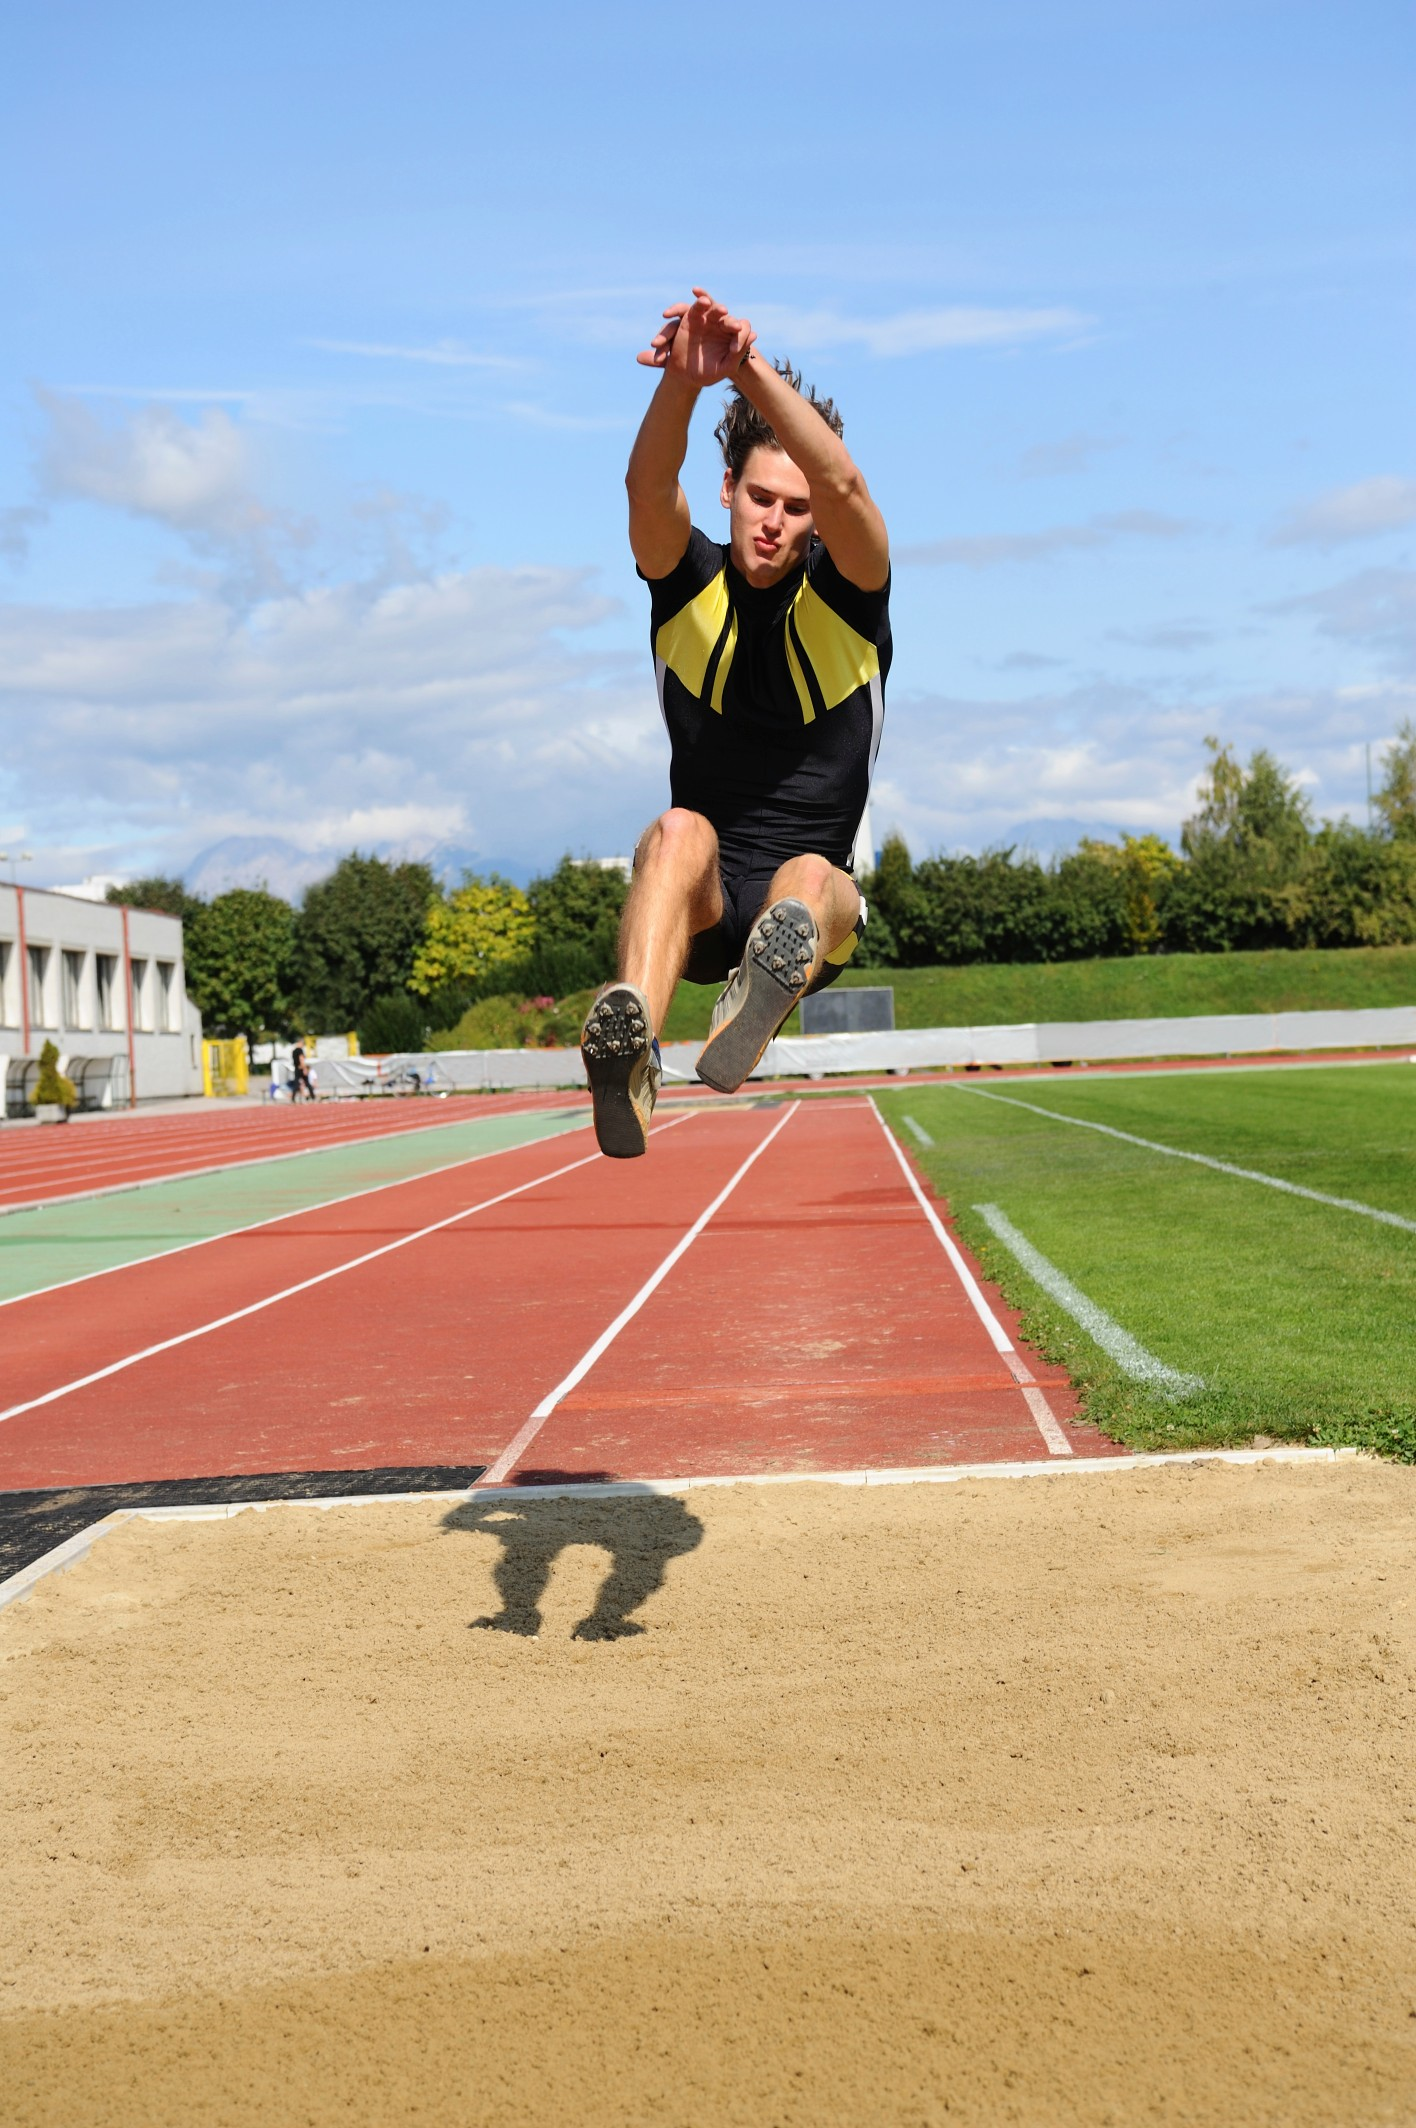 ETC Sports Surfaces are experts in installing and maintaining polymeric athletic track surfaces.